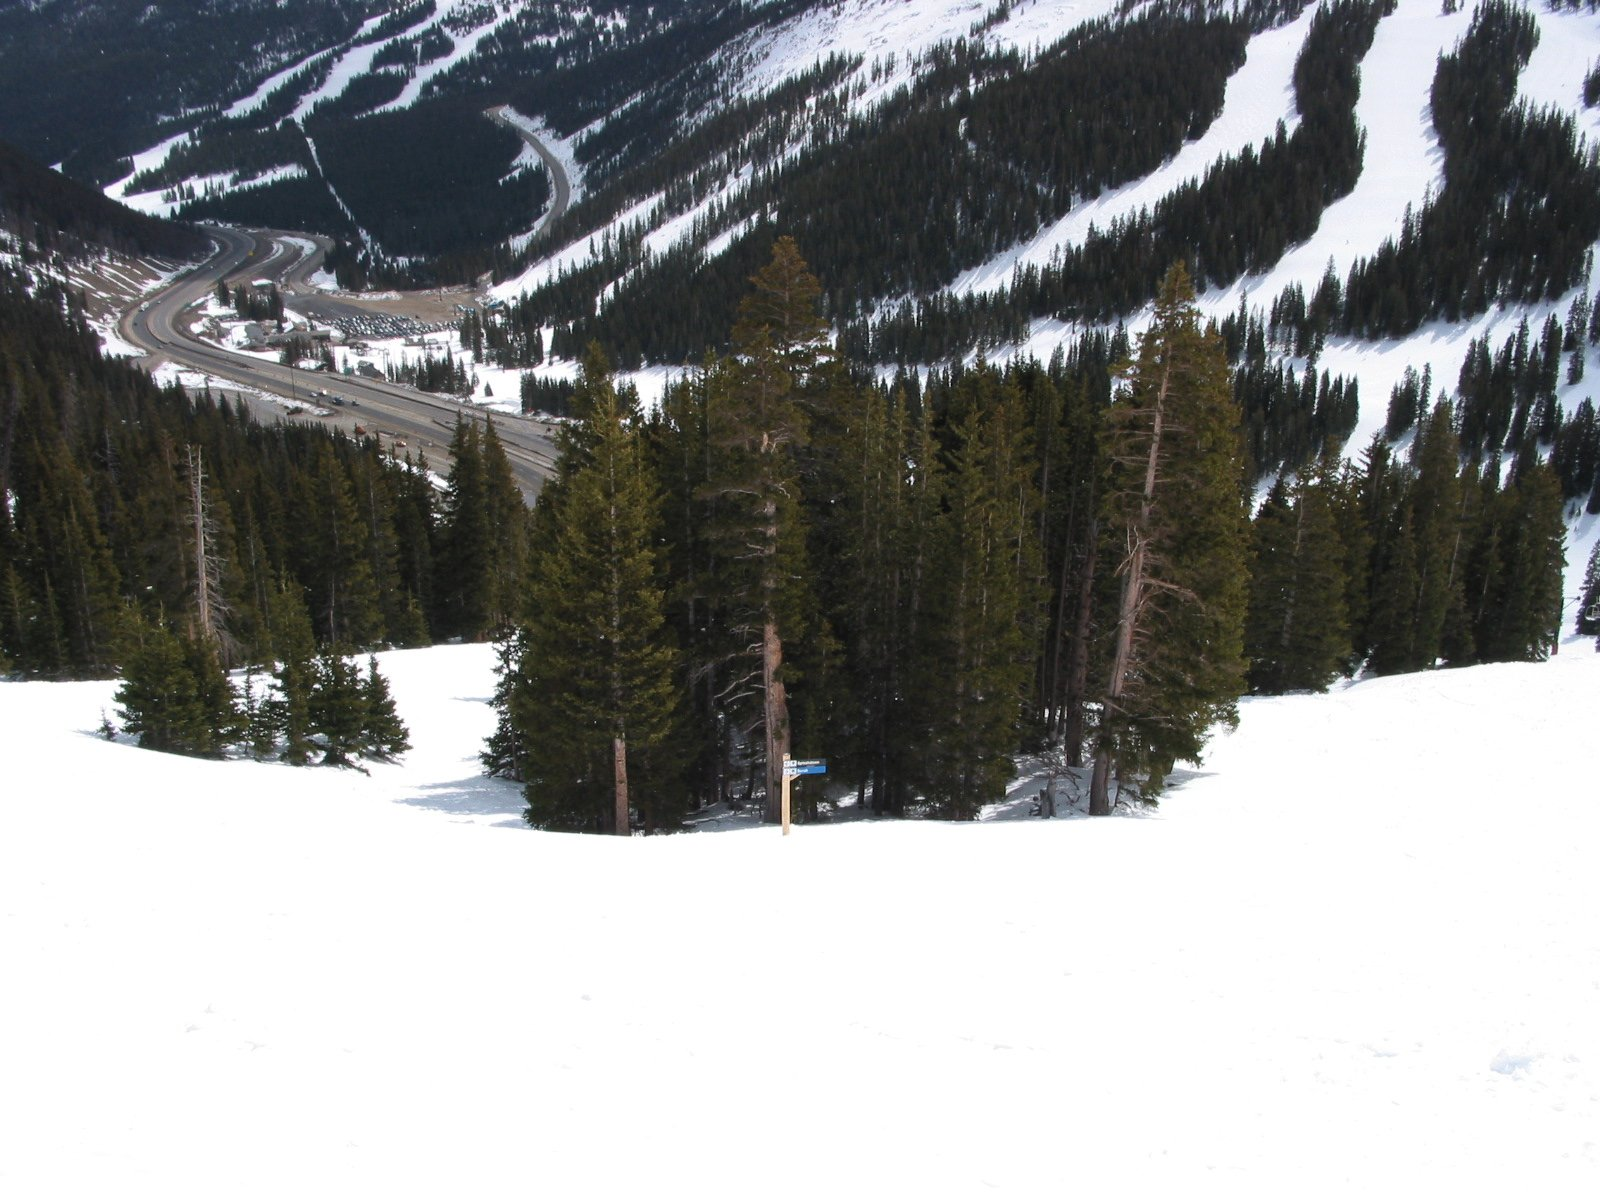 Intersection of the Scrub and Splashdown Ski Runs